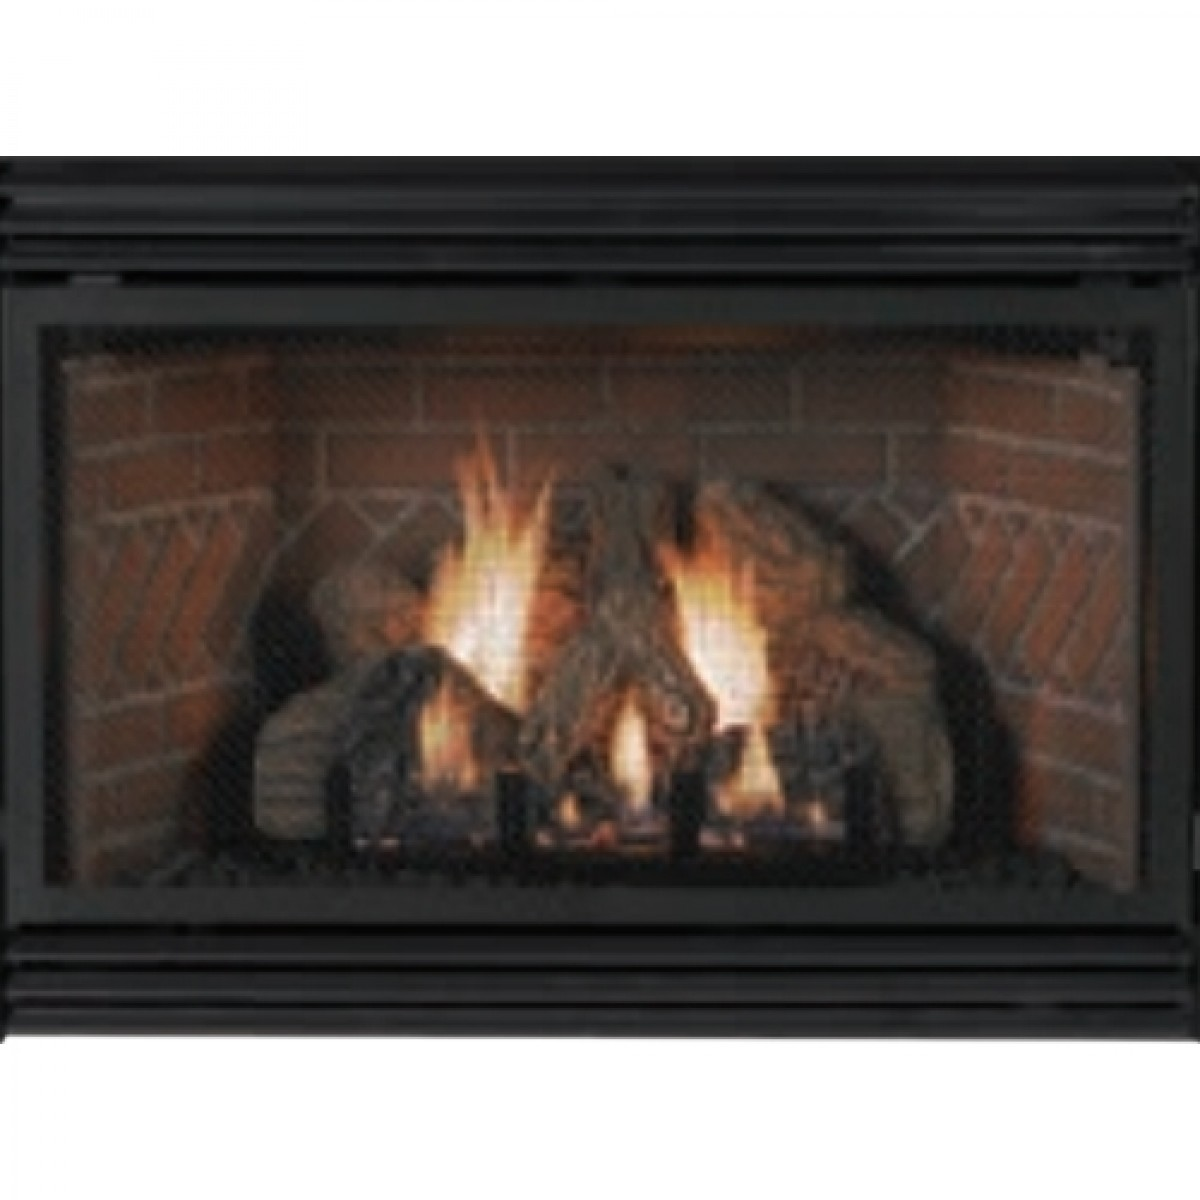 Free Fireplace Insert Empire Innsbrook Vent Free Traditional Gas Insert